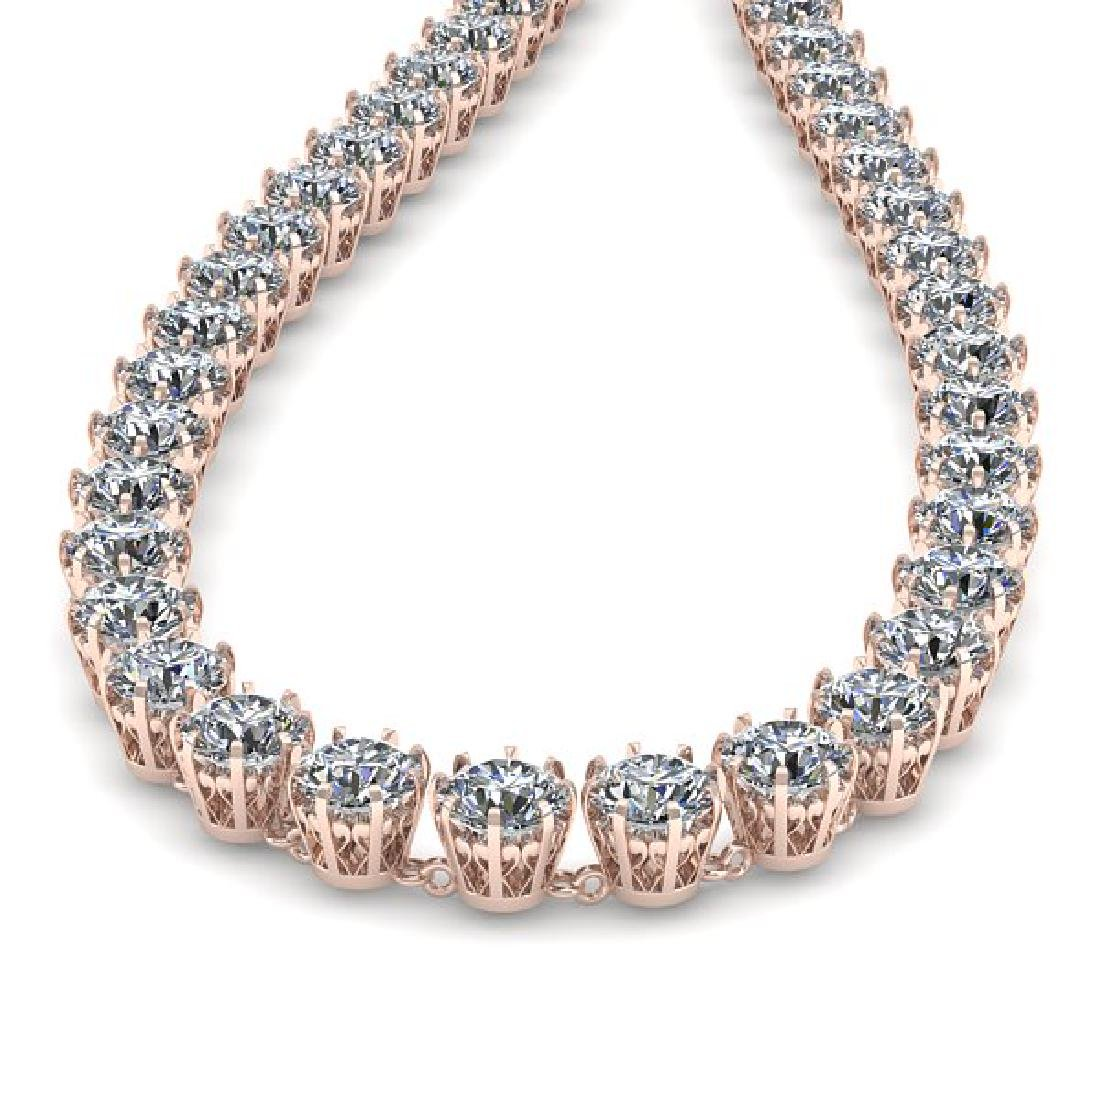 30 CTW SI Certified Diamond Necklace 18K Rose Gold - 2